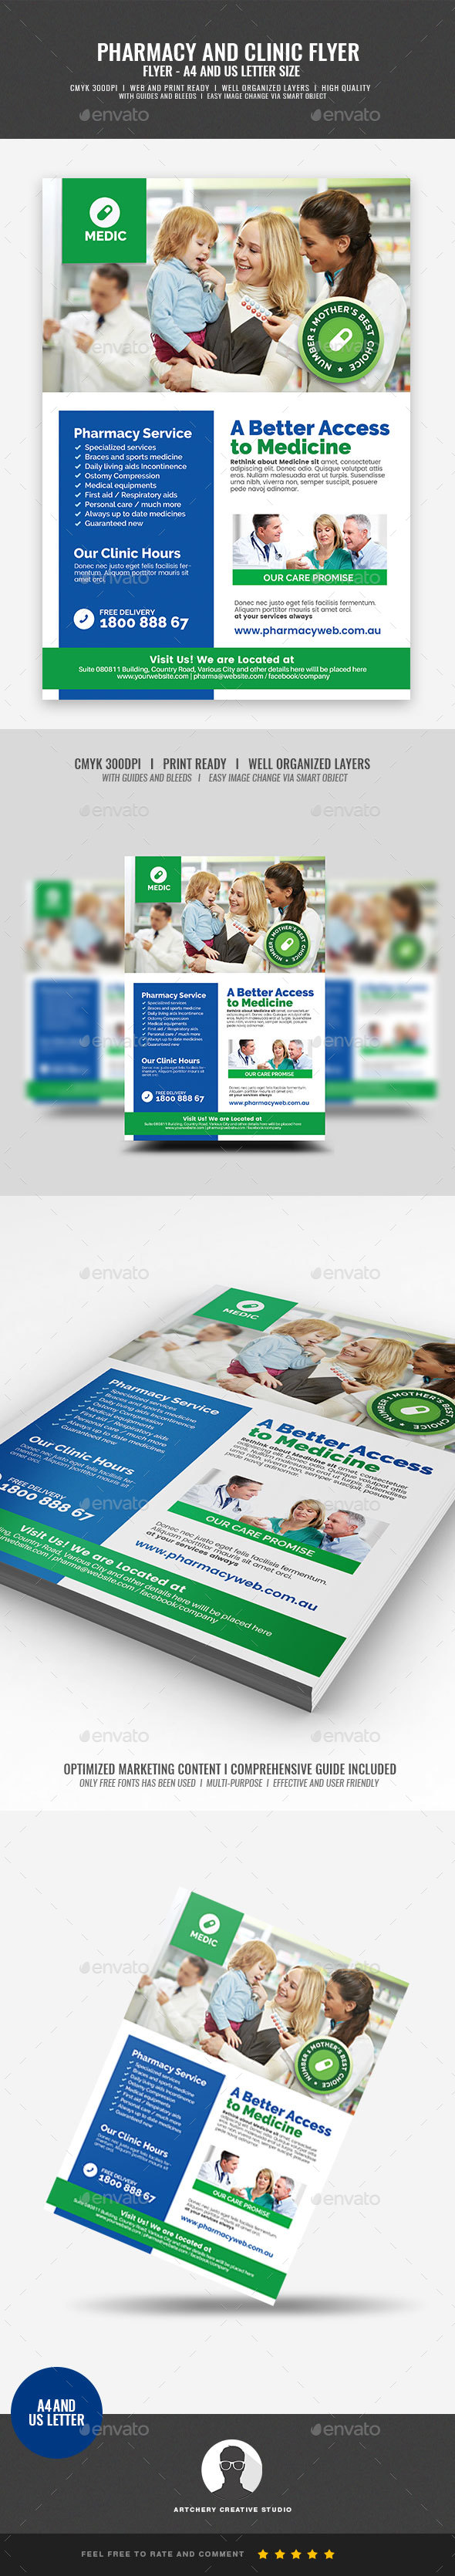 Pharmacy and Medical Clinic Flyer - Corporate Flyers